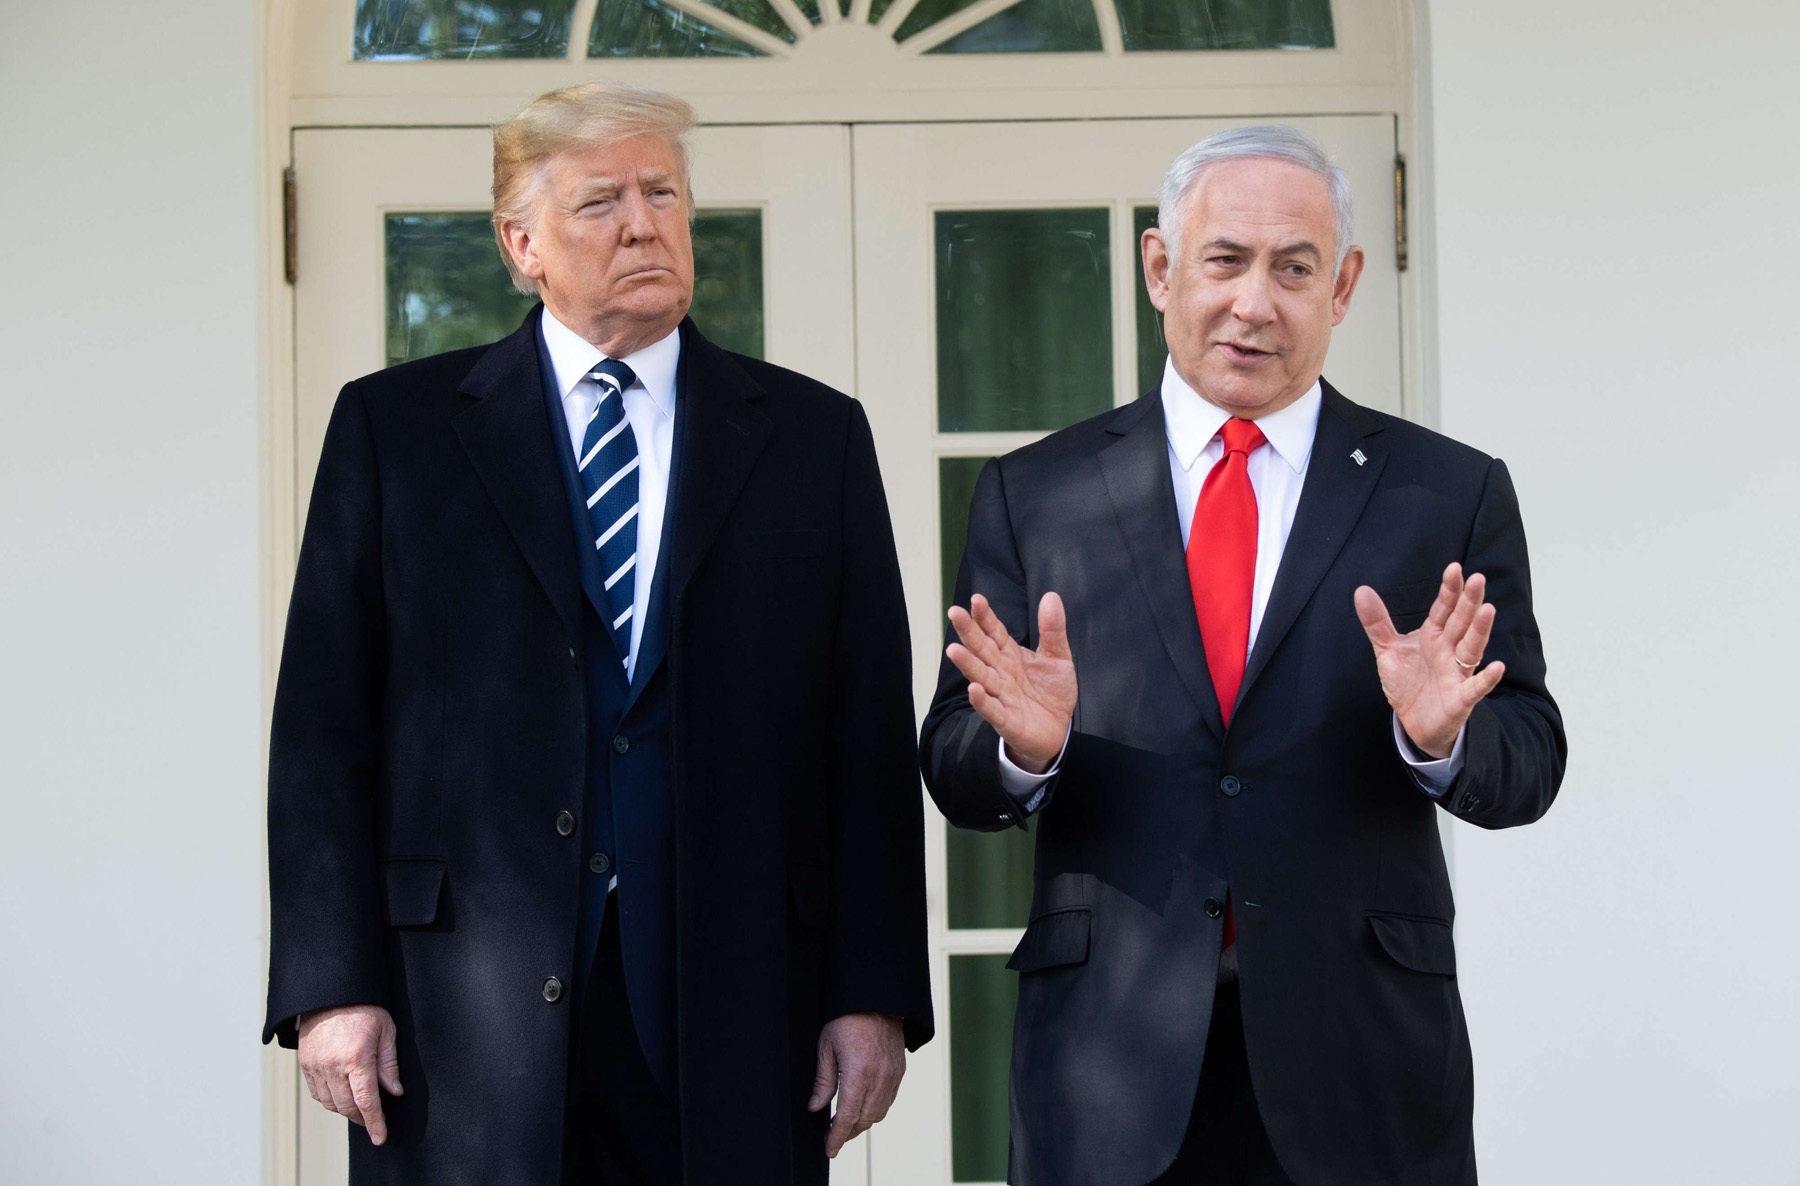 US President Donald Trump and Israeli Prime Minister Benjamin Netanyahu (R) speak to the press on the West Wing Colonnade prior to meetings at the White House in Washington, DC. (AFP)